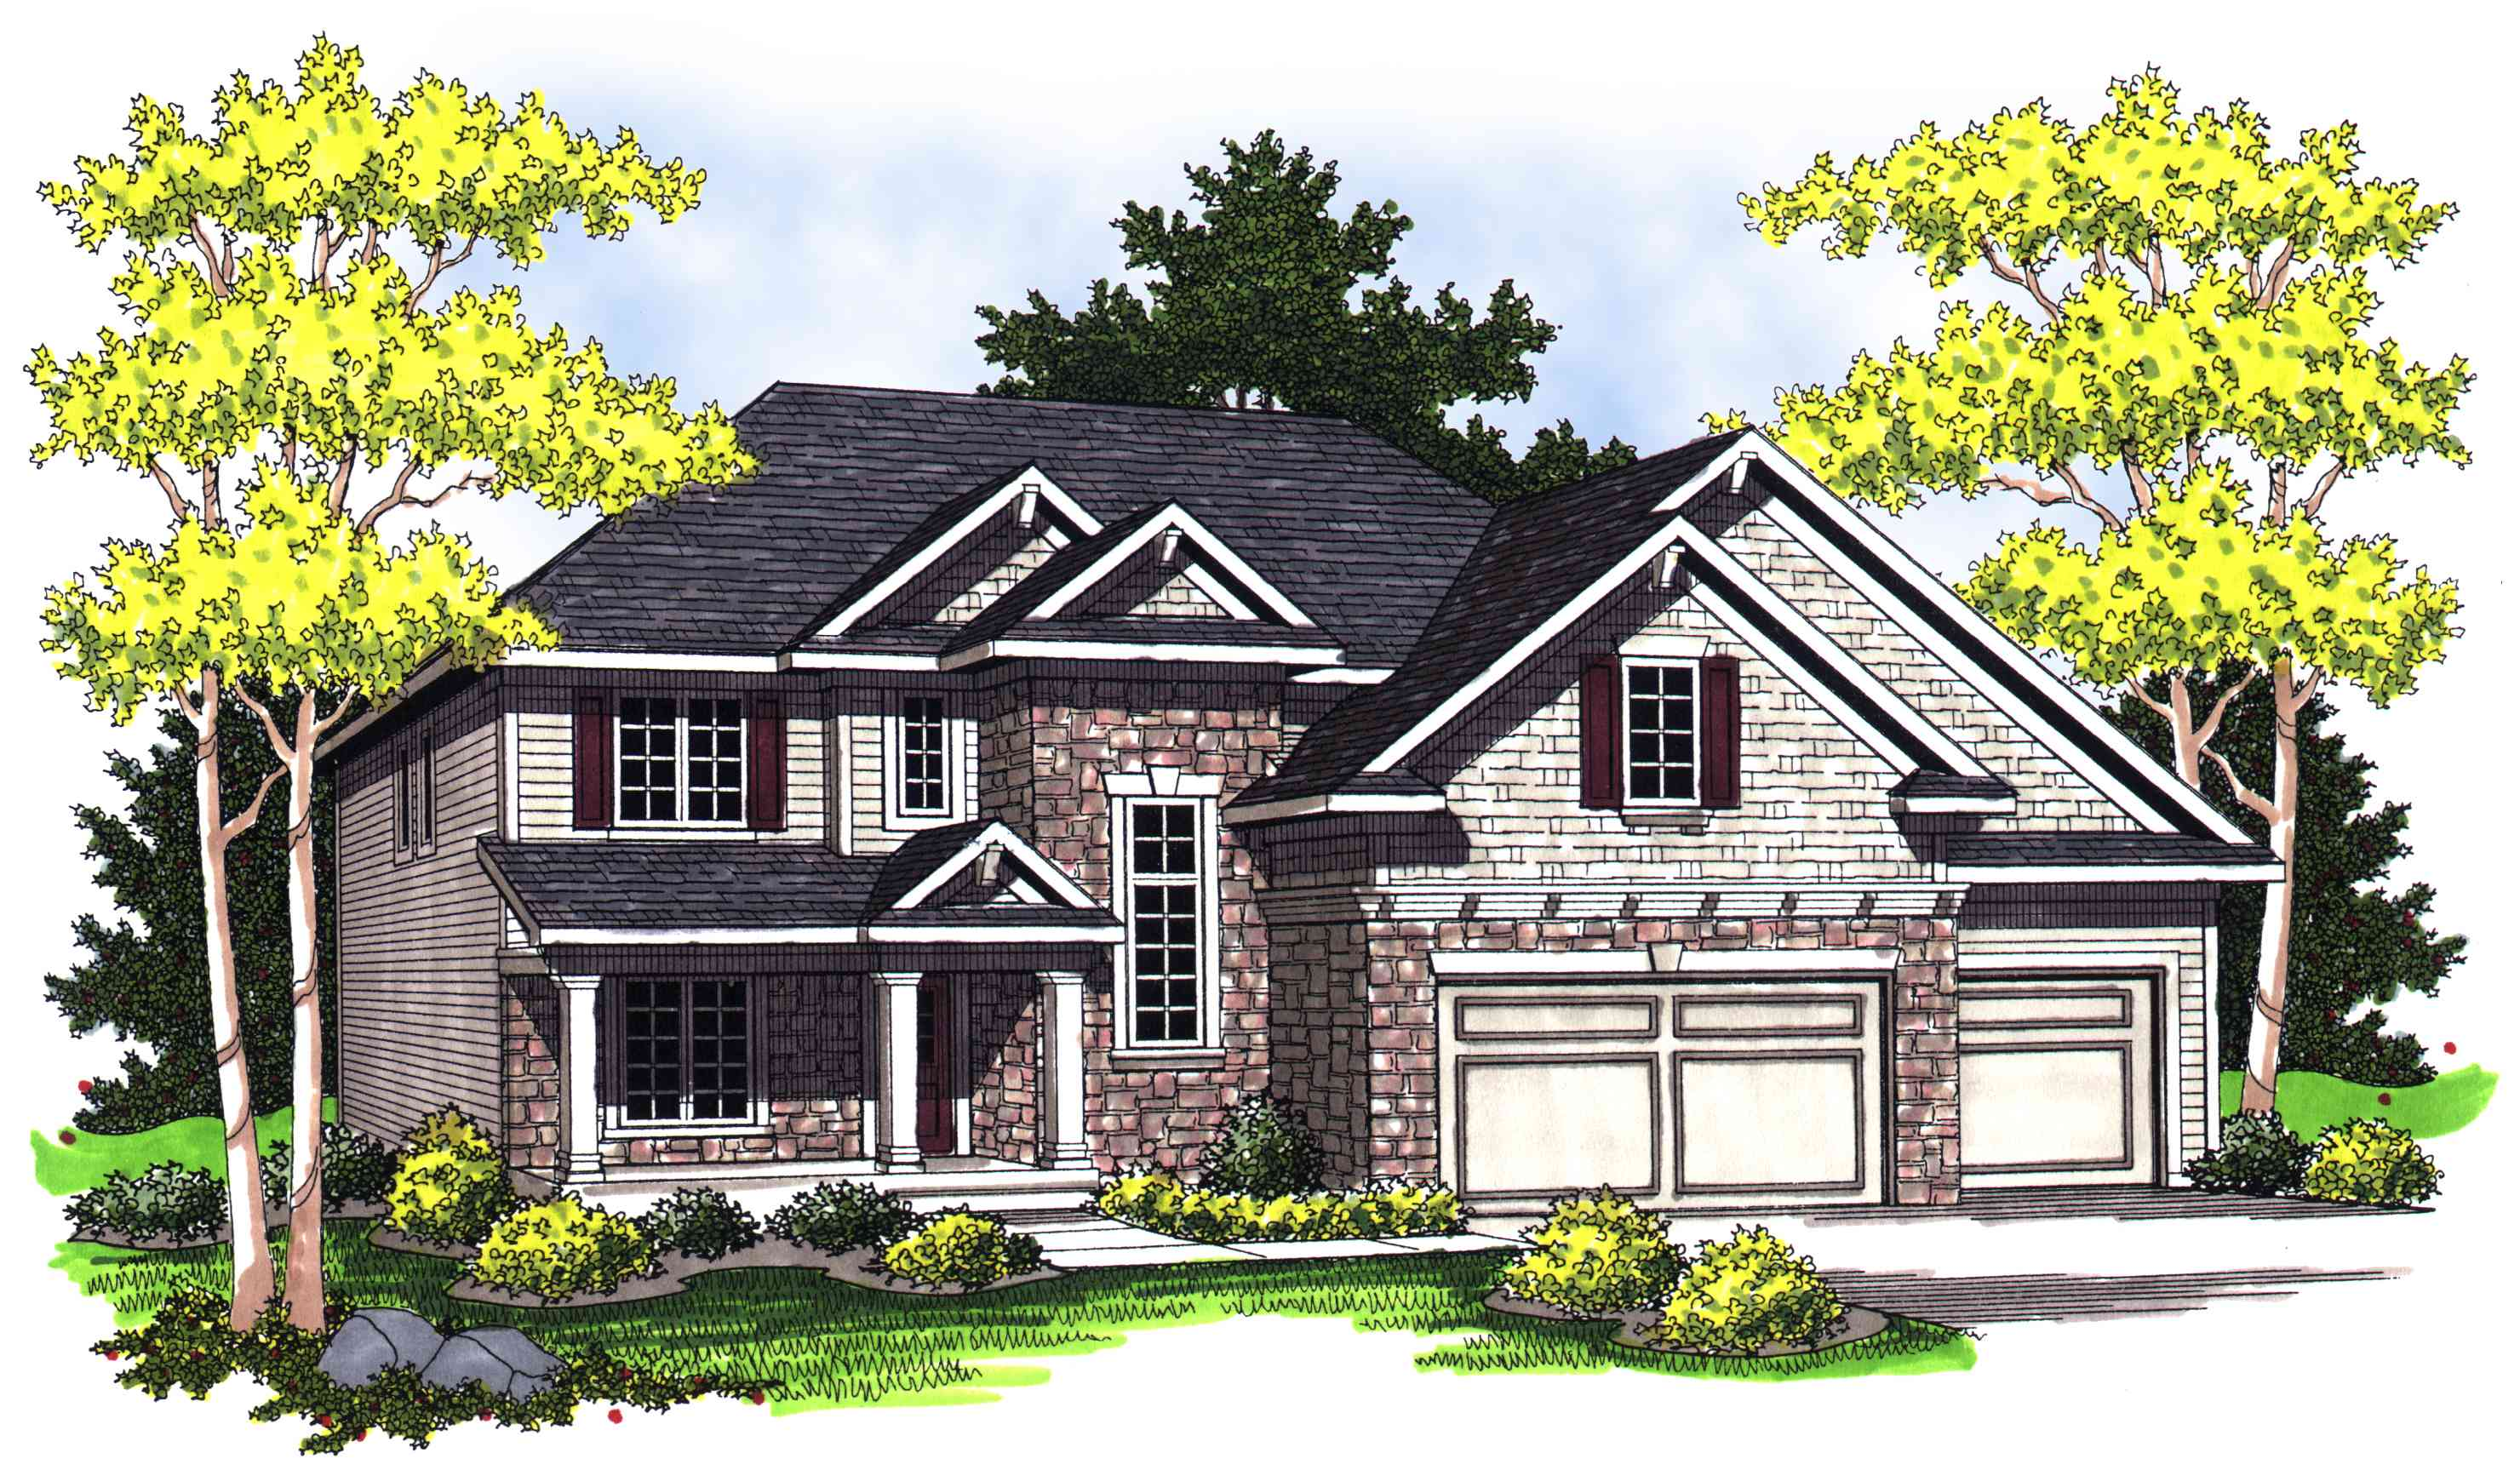 European home plan with columns on front porch 89241ah for House plans with pillars